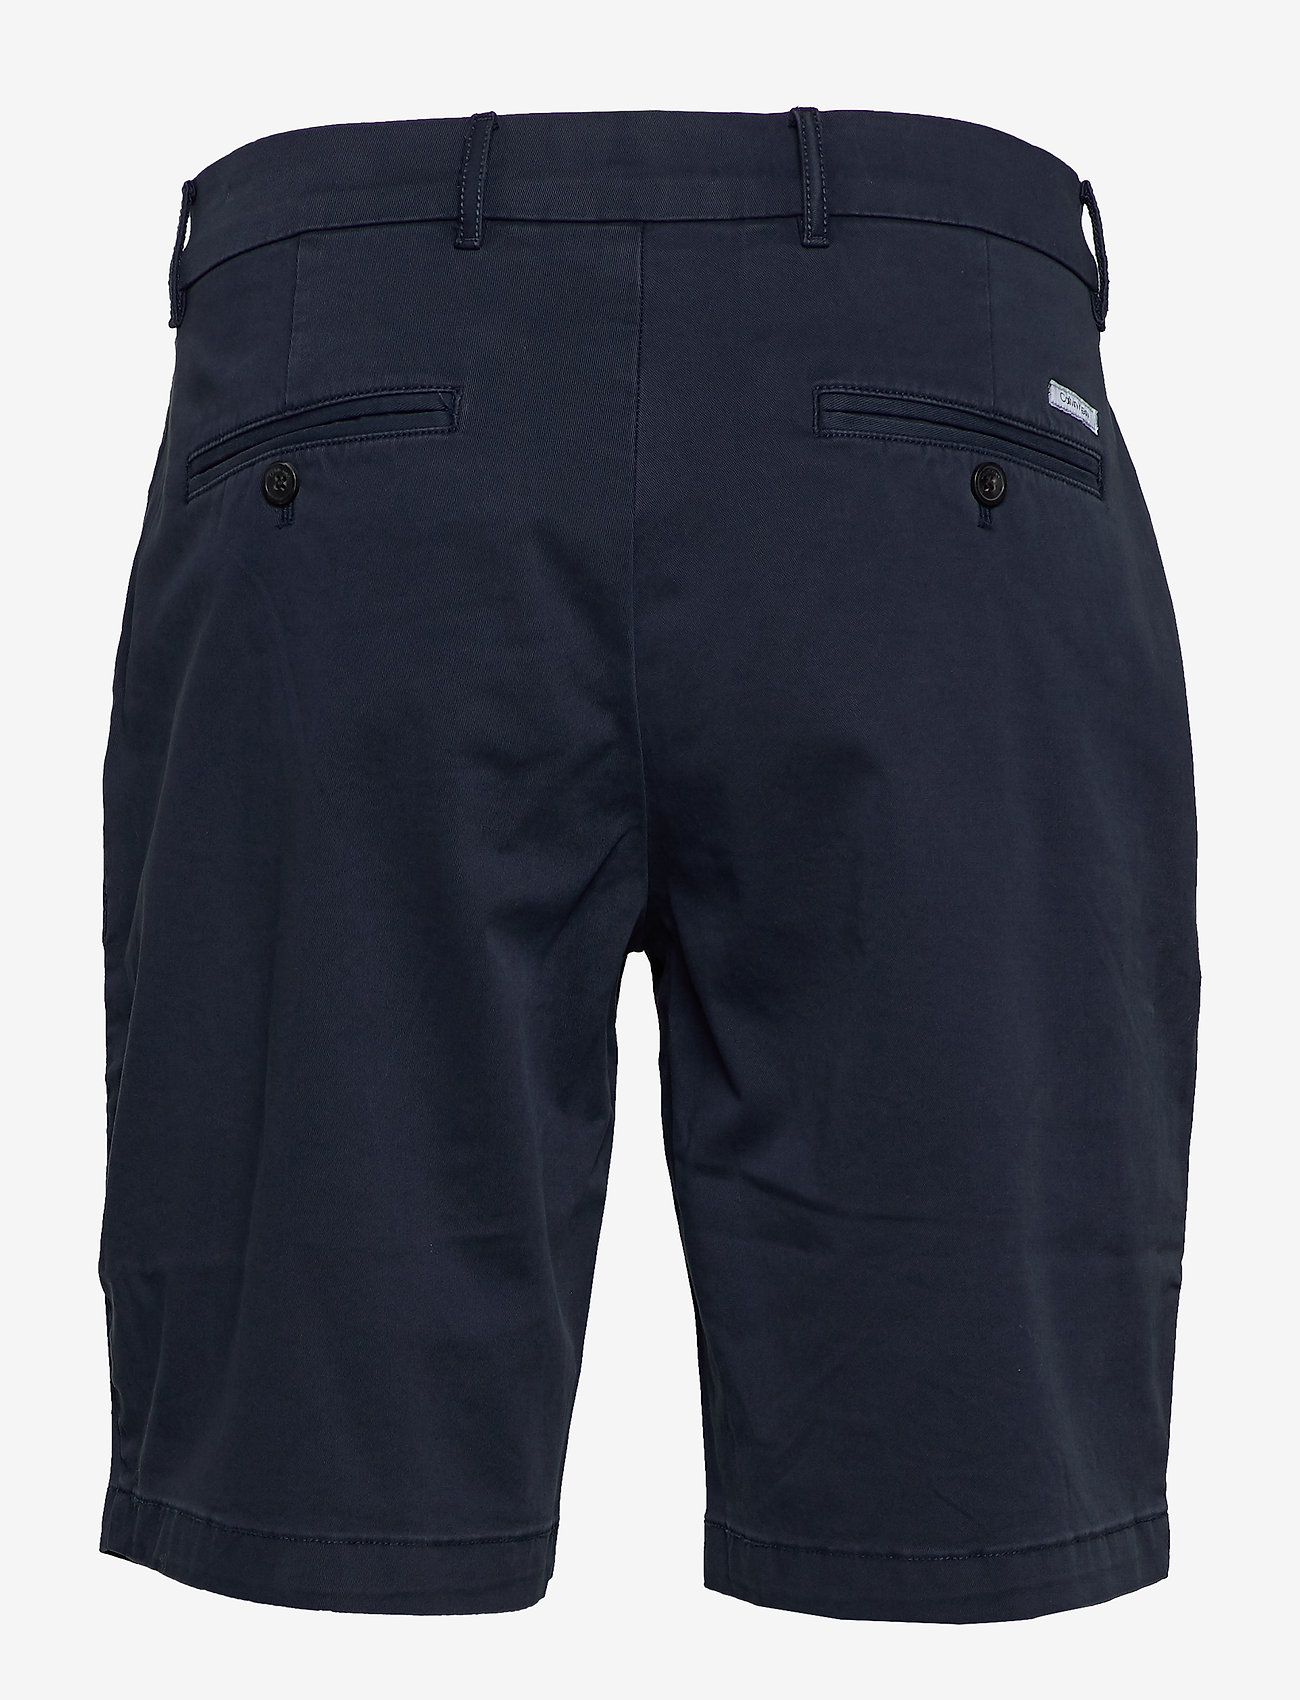 Calvin Klein - SLIM FIT GARMENT DYED SHORTS - tailored shorts - calvin navy - 1